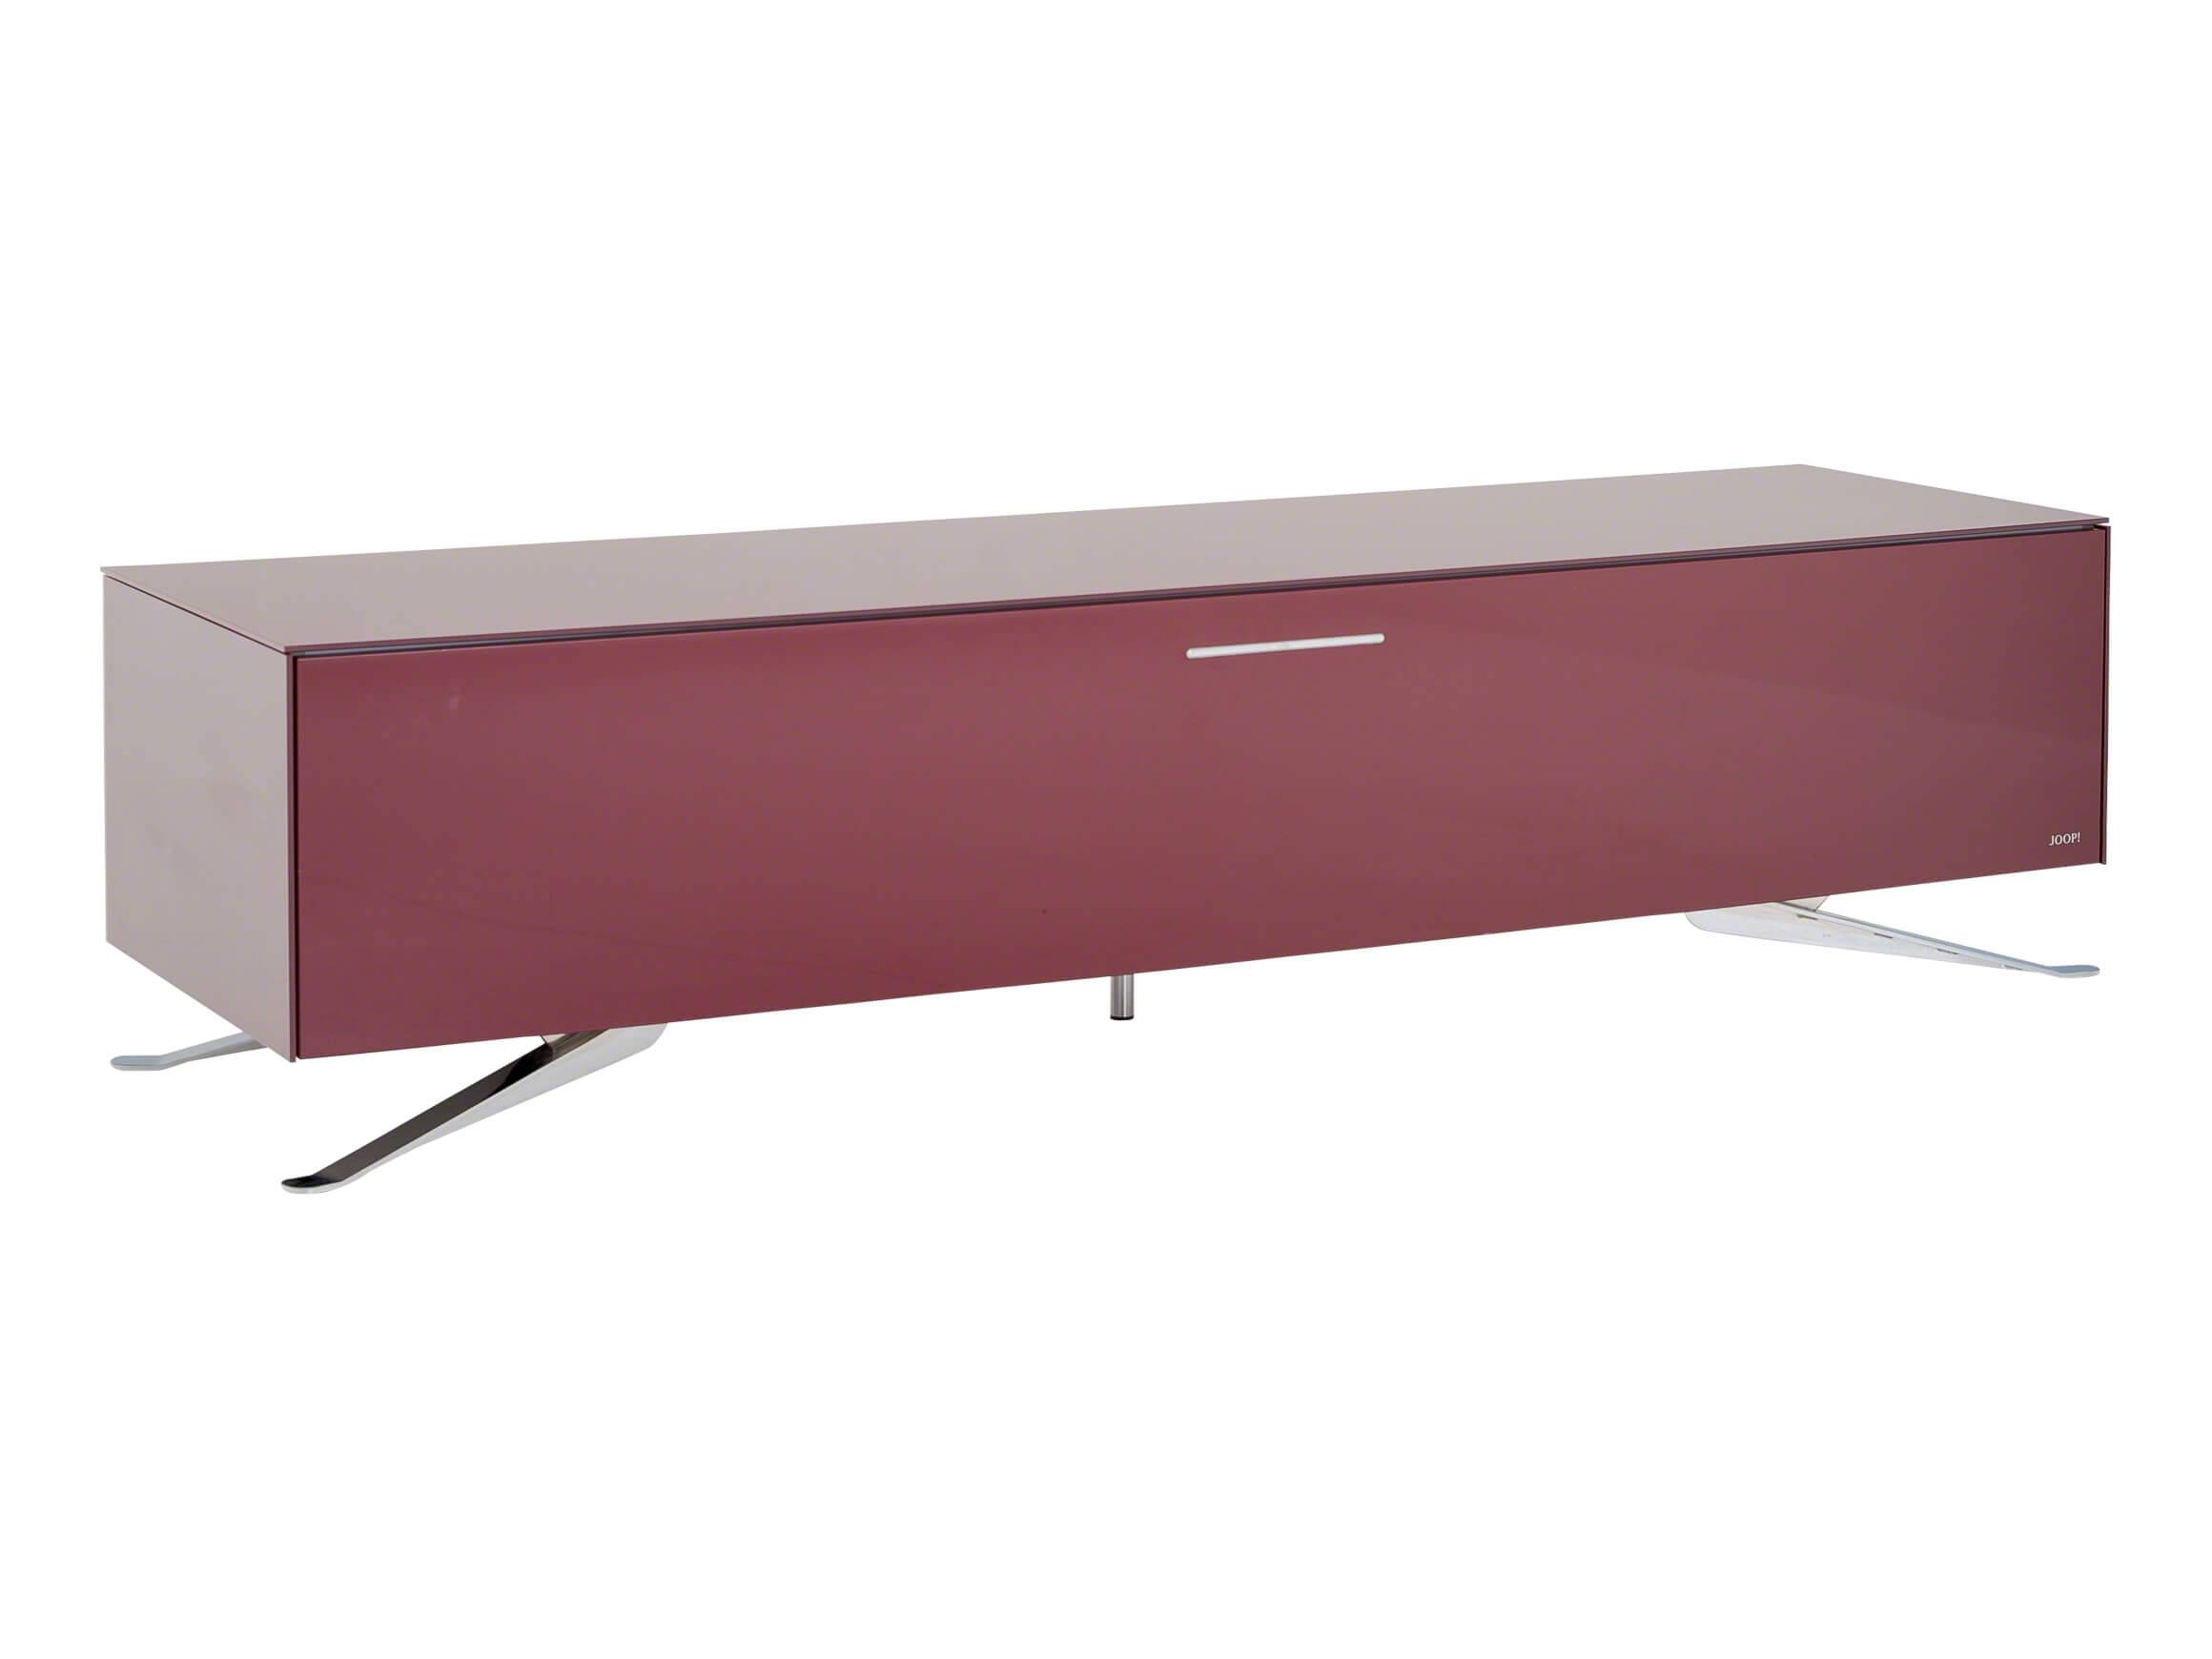 Lowboard Lounge 50247, Brombeer, Beleuchtung, B 202 Cm H 50 Cm T Intended For Newest Joop Sideboards (#10 of 15)